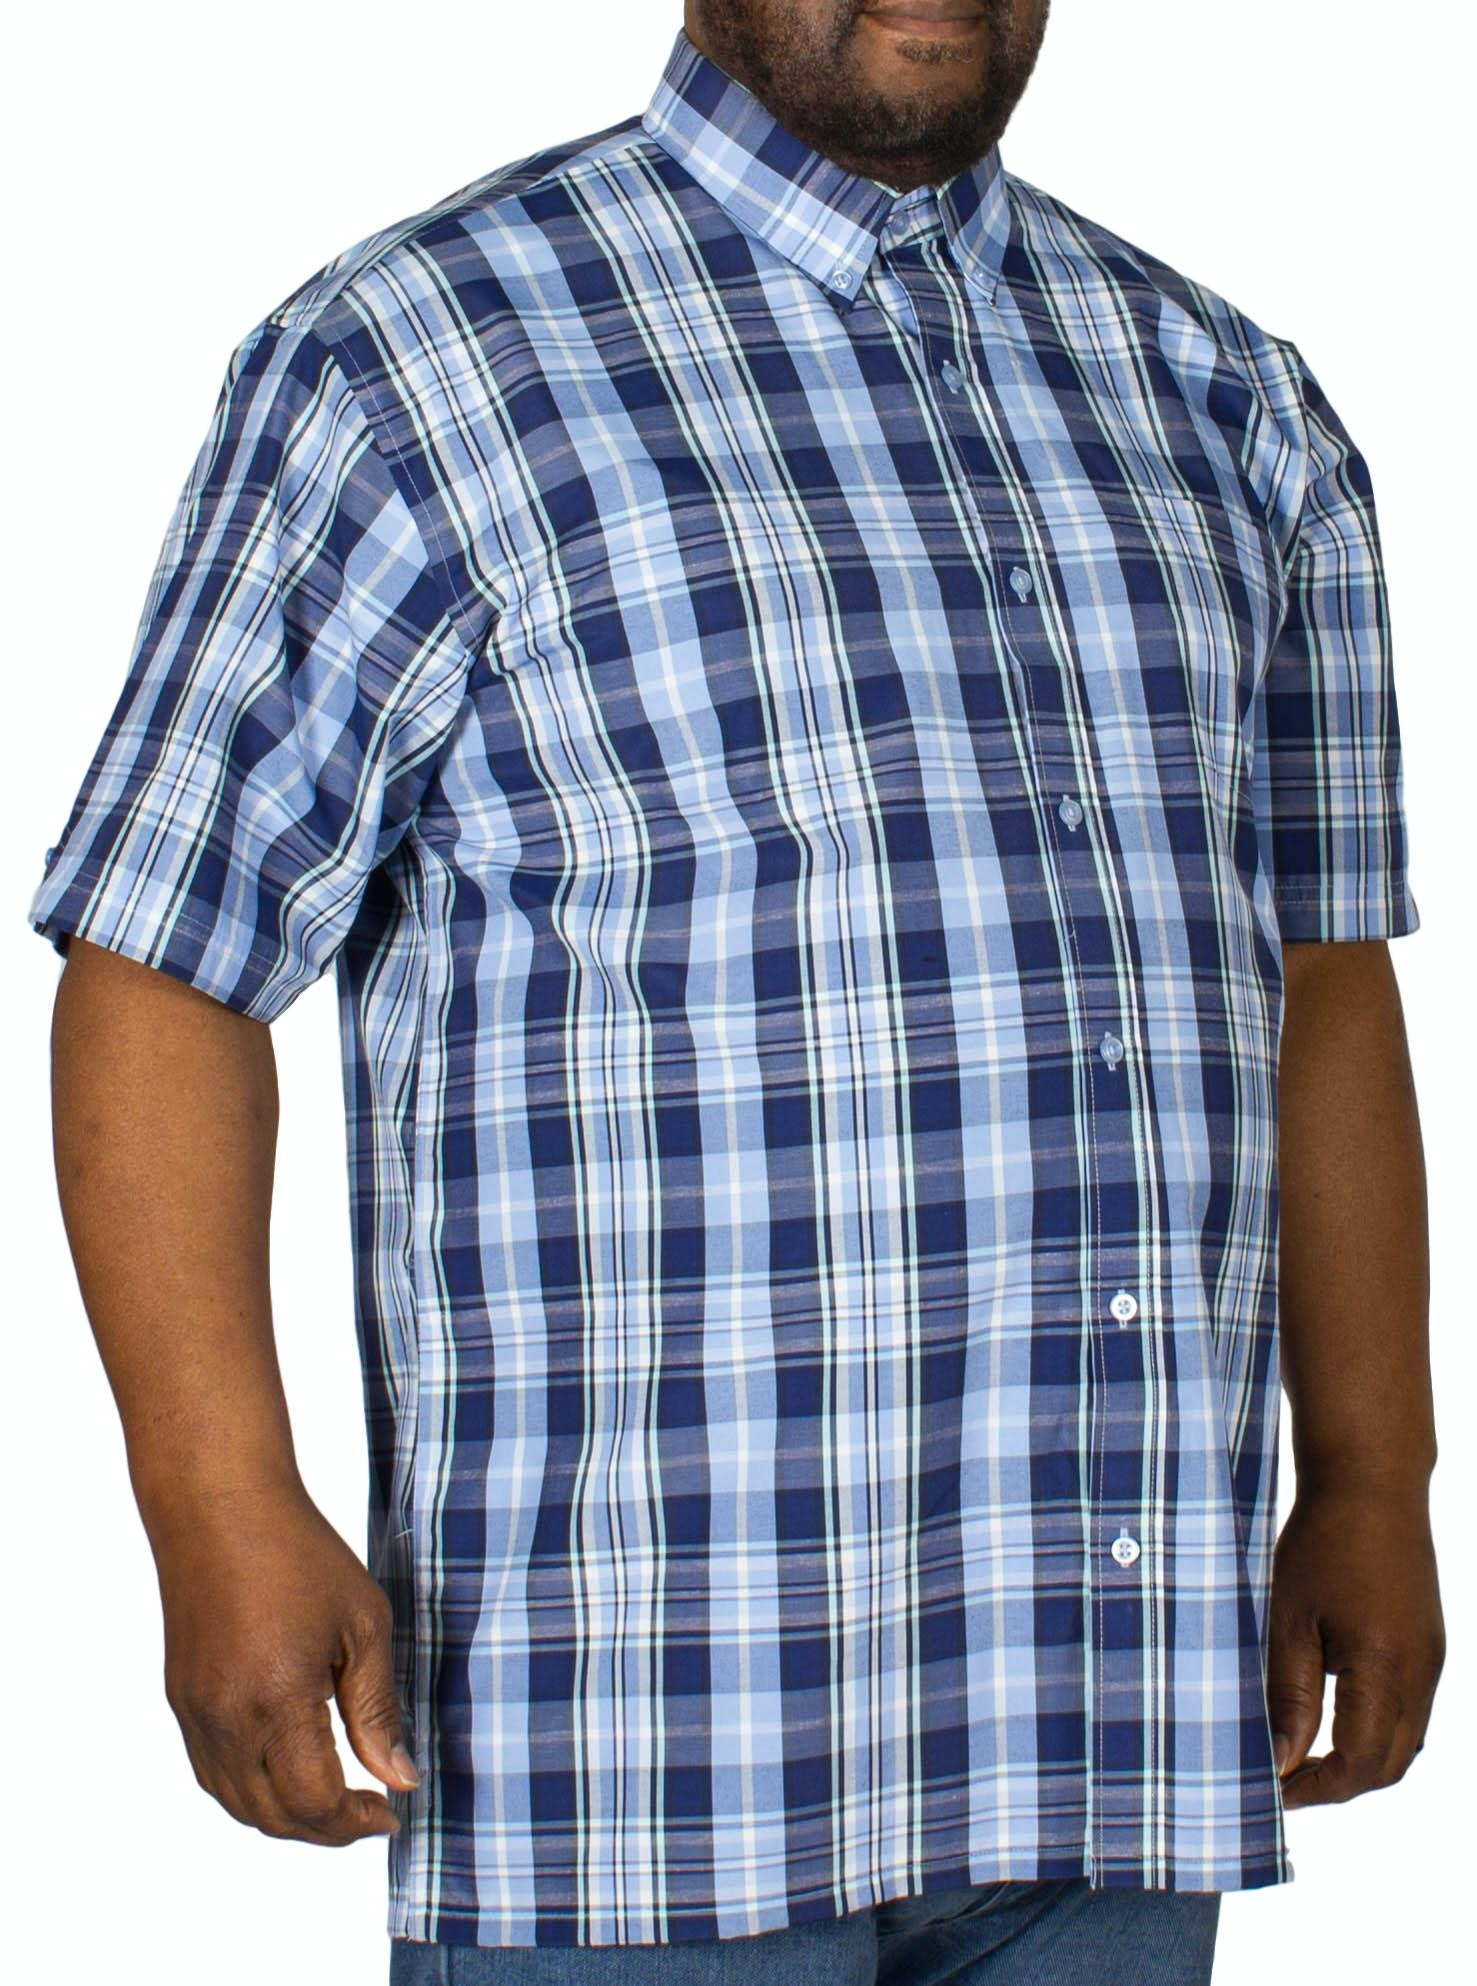 Espionage Check Short Sleeve Shirt Navy/White